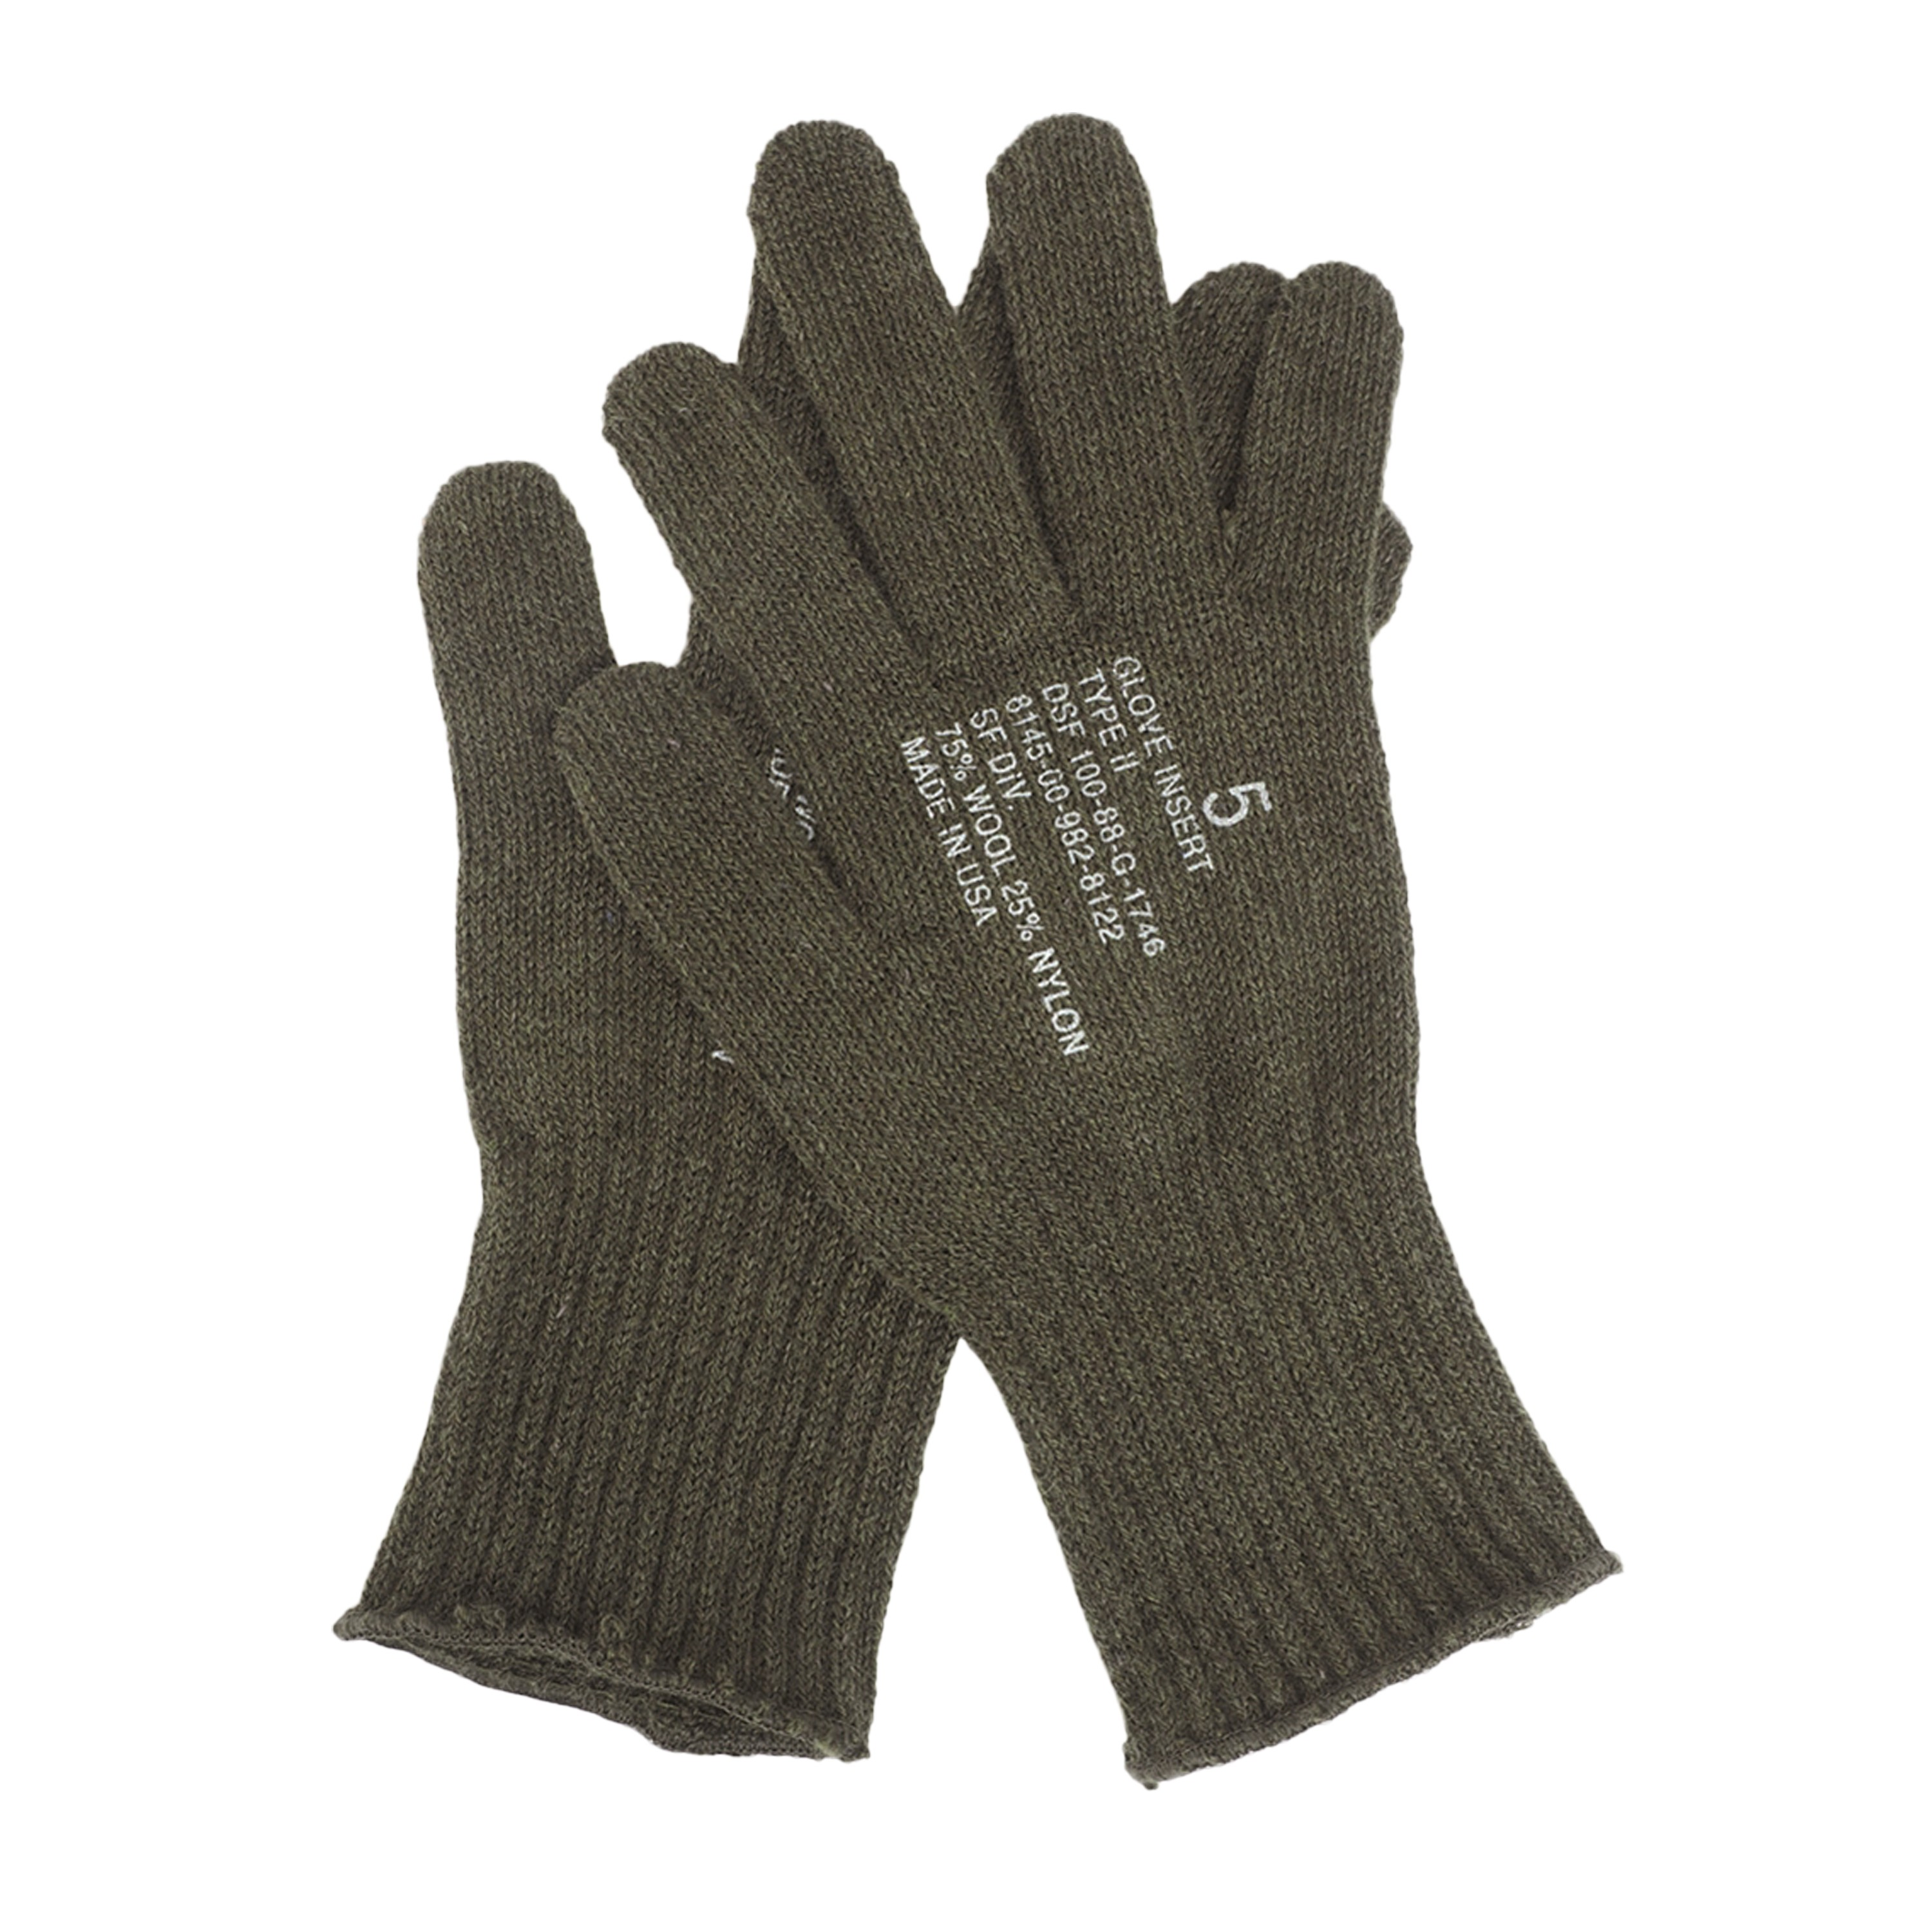 Handschuhe Wolle US oliv